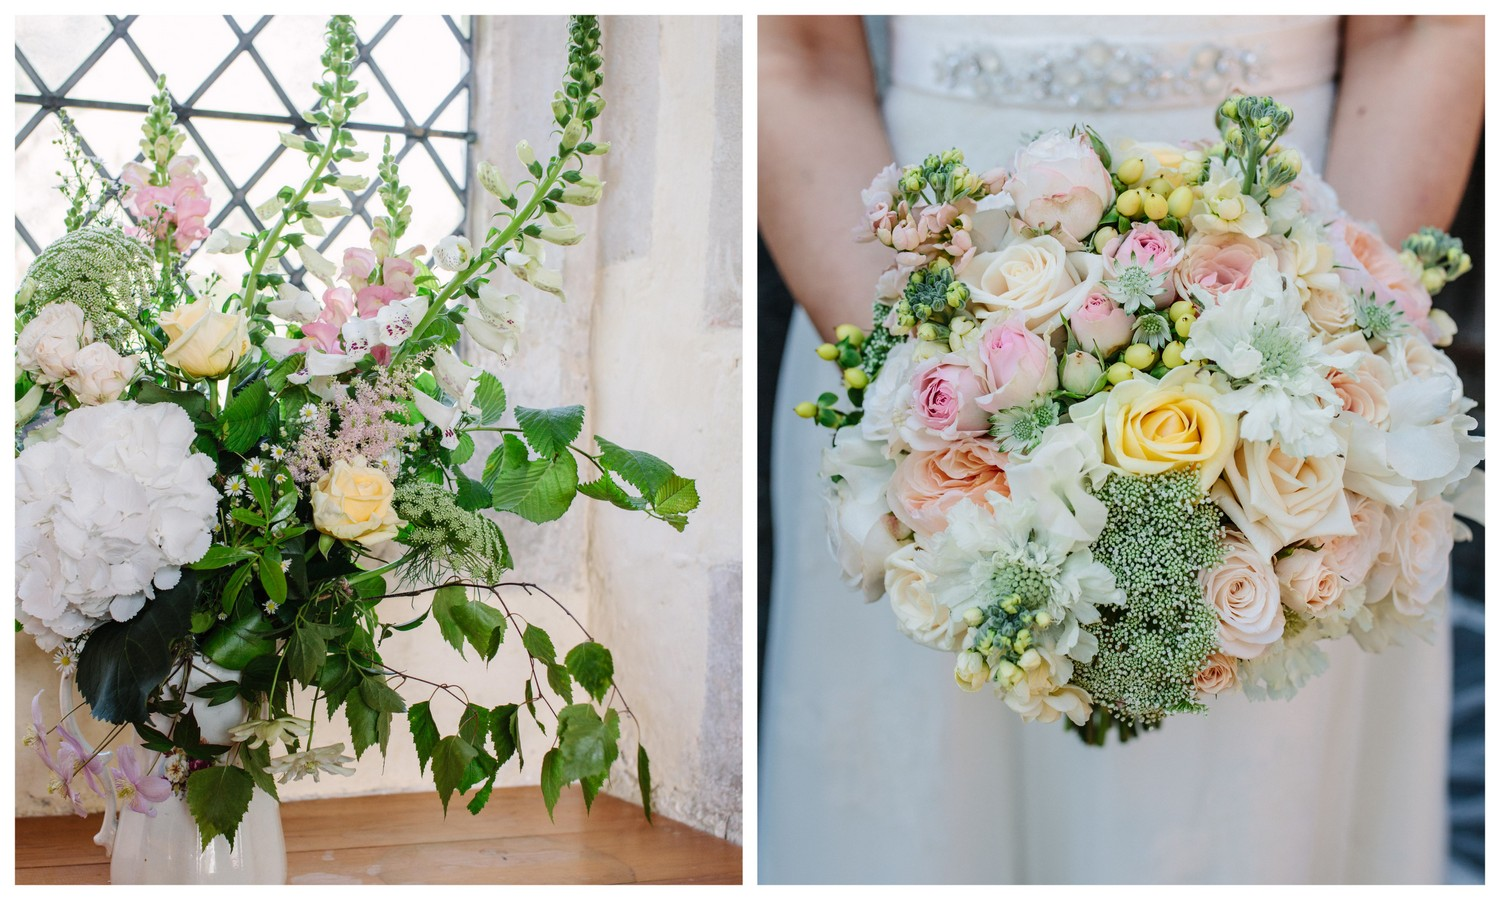 Country style wedding flowers in soft, pastel shades